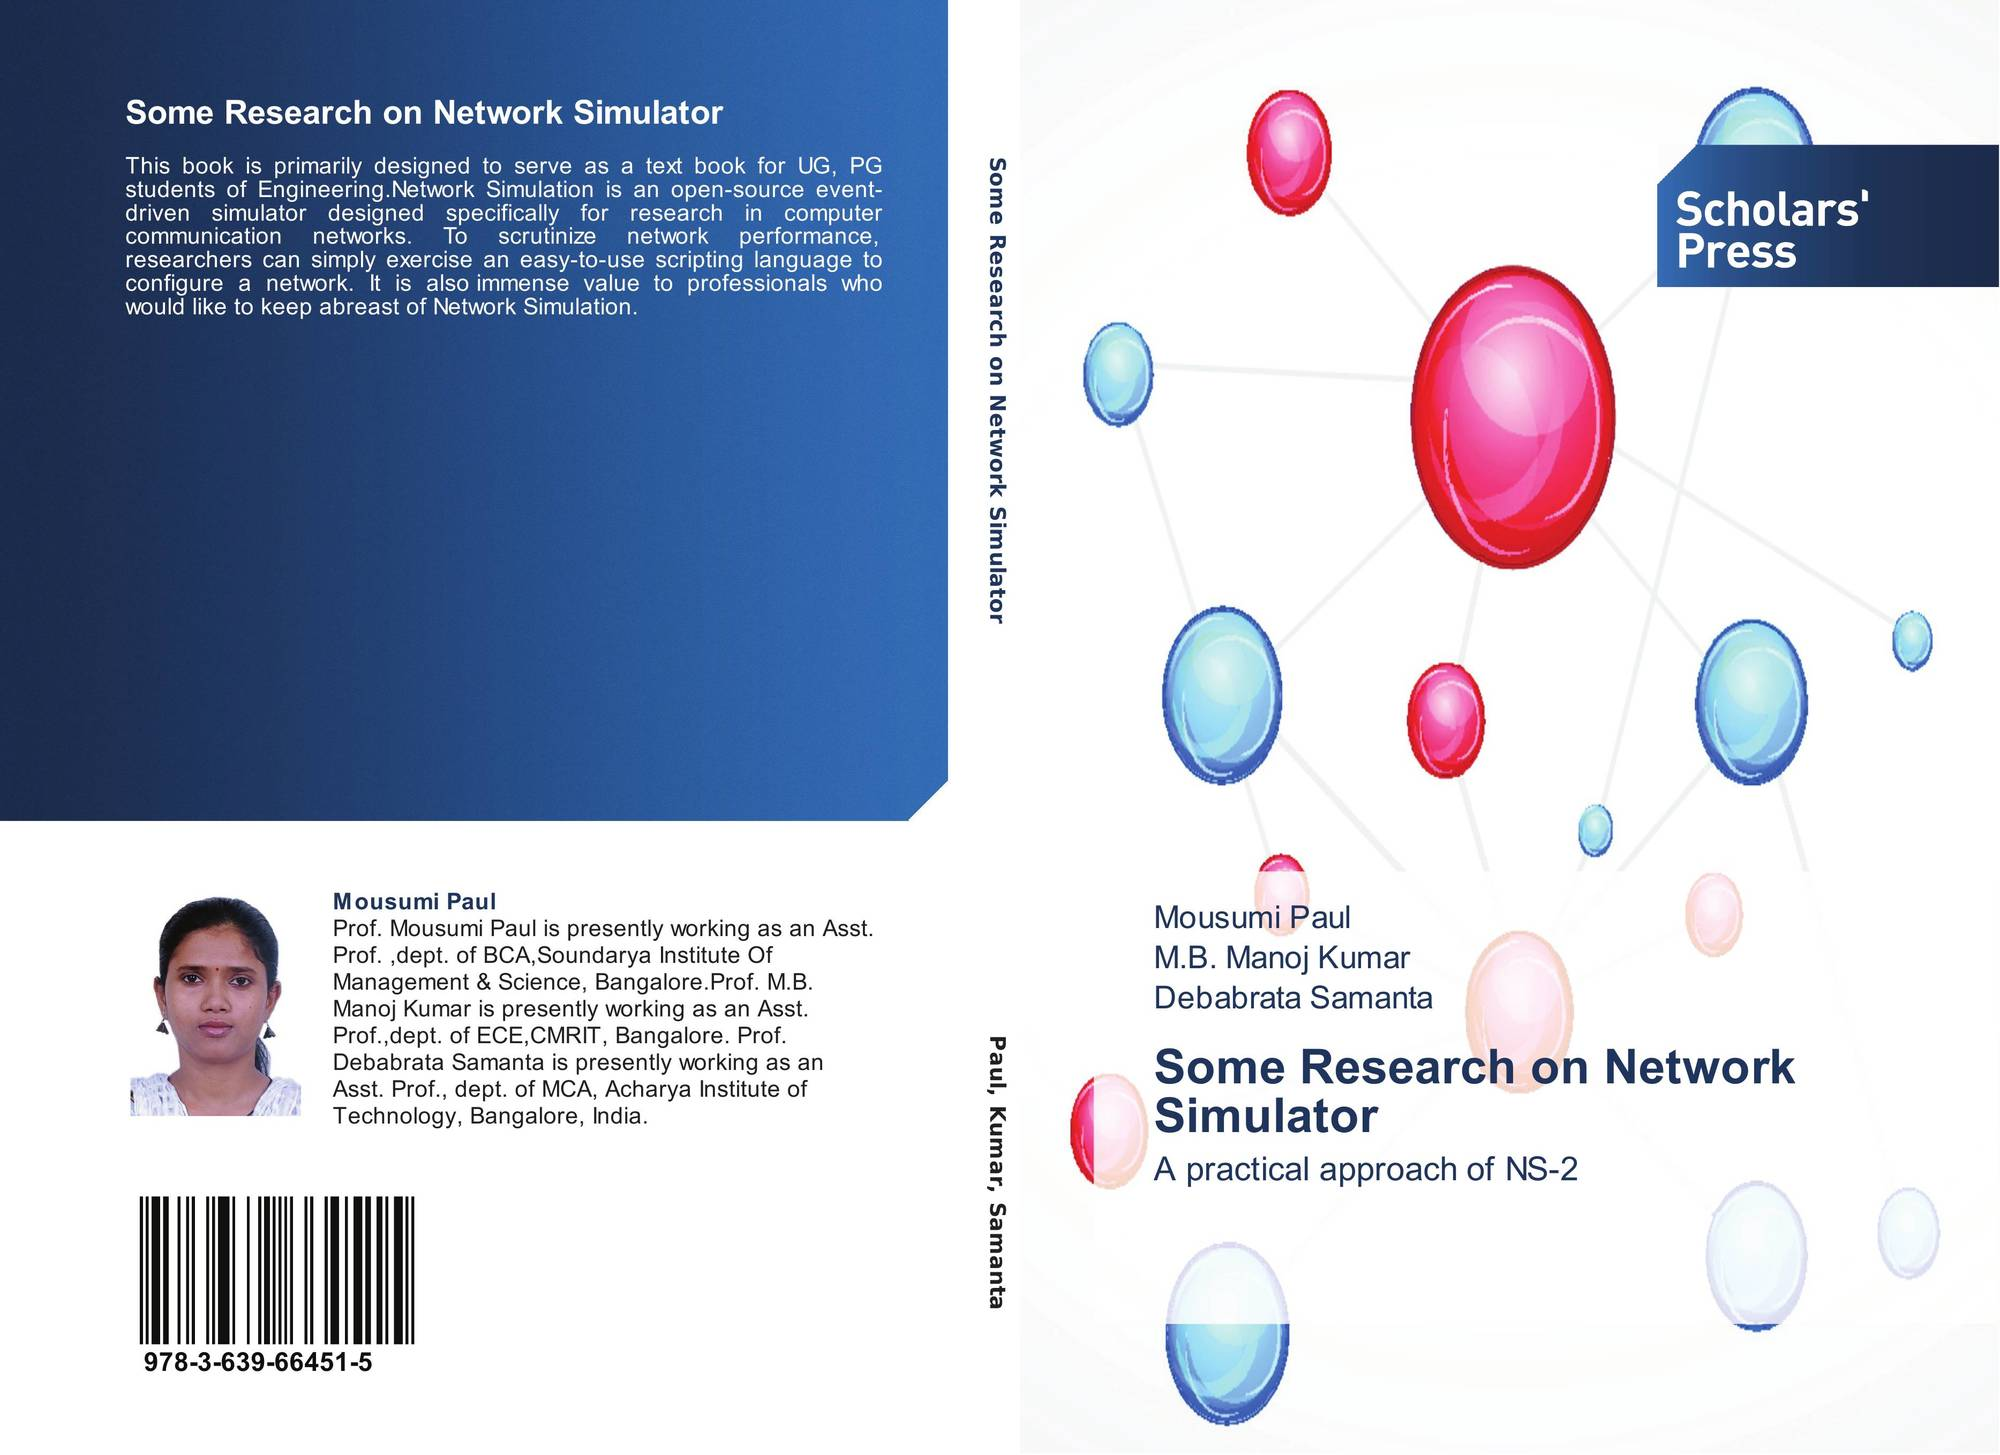 Some Research on Network Simulator, 978-3-639-66451-5